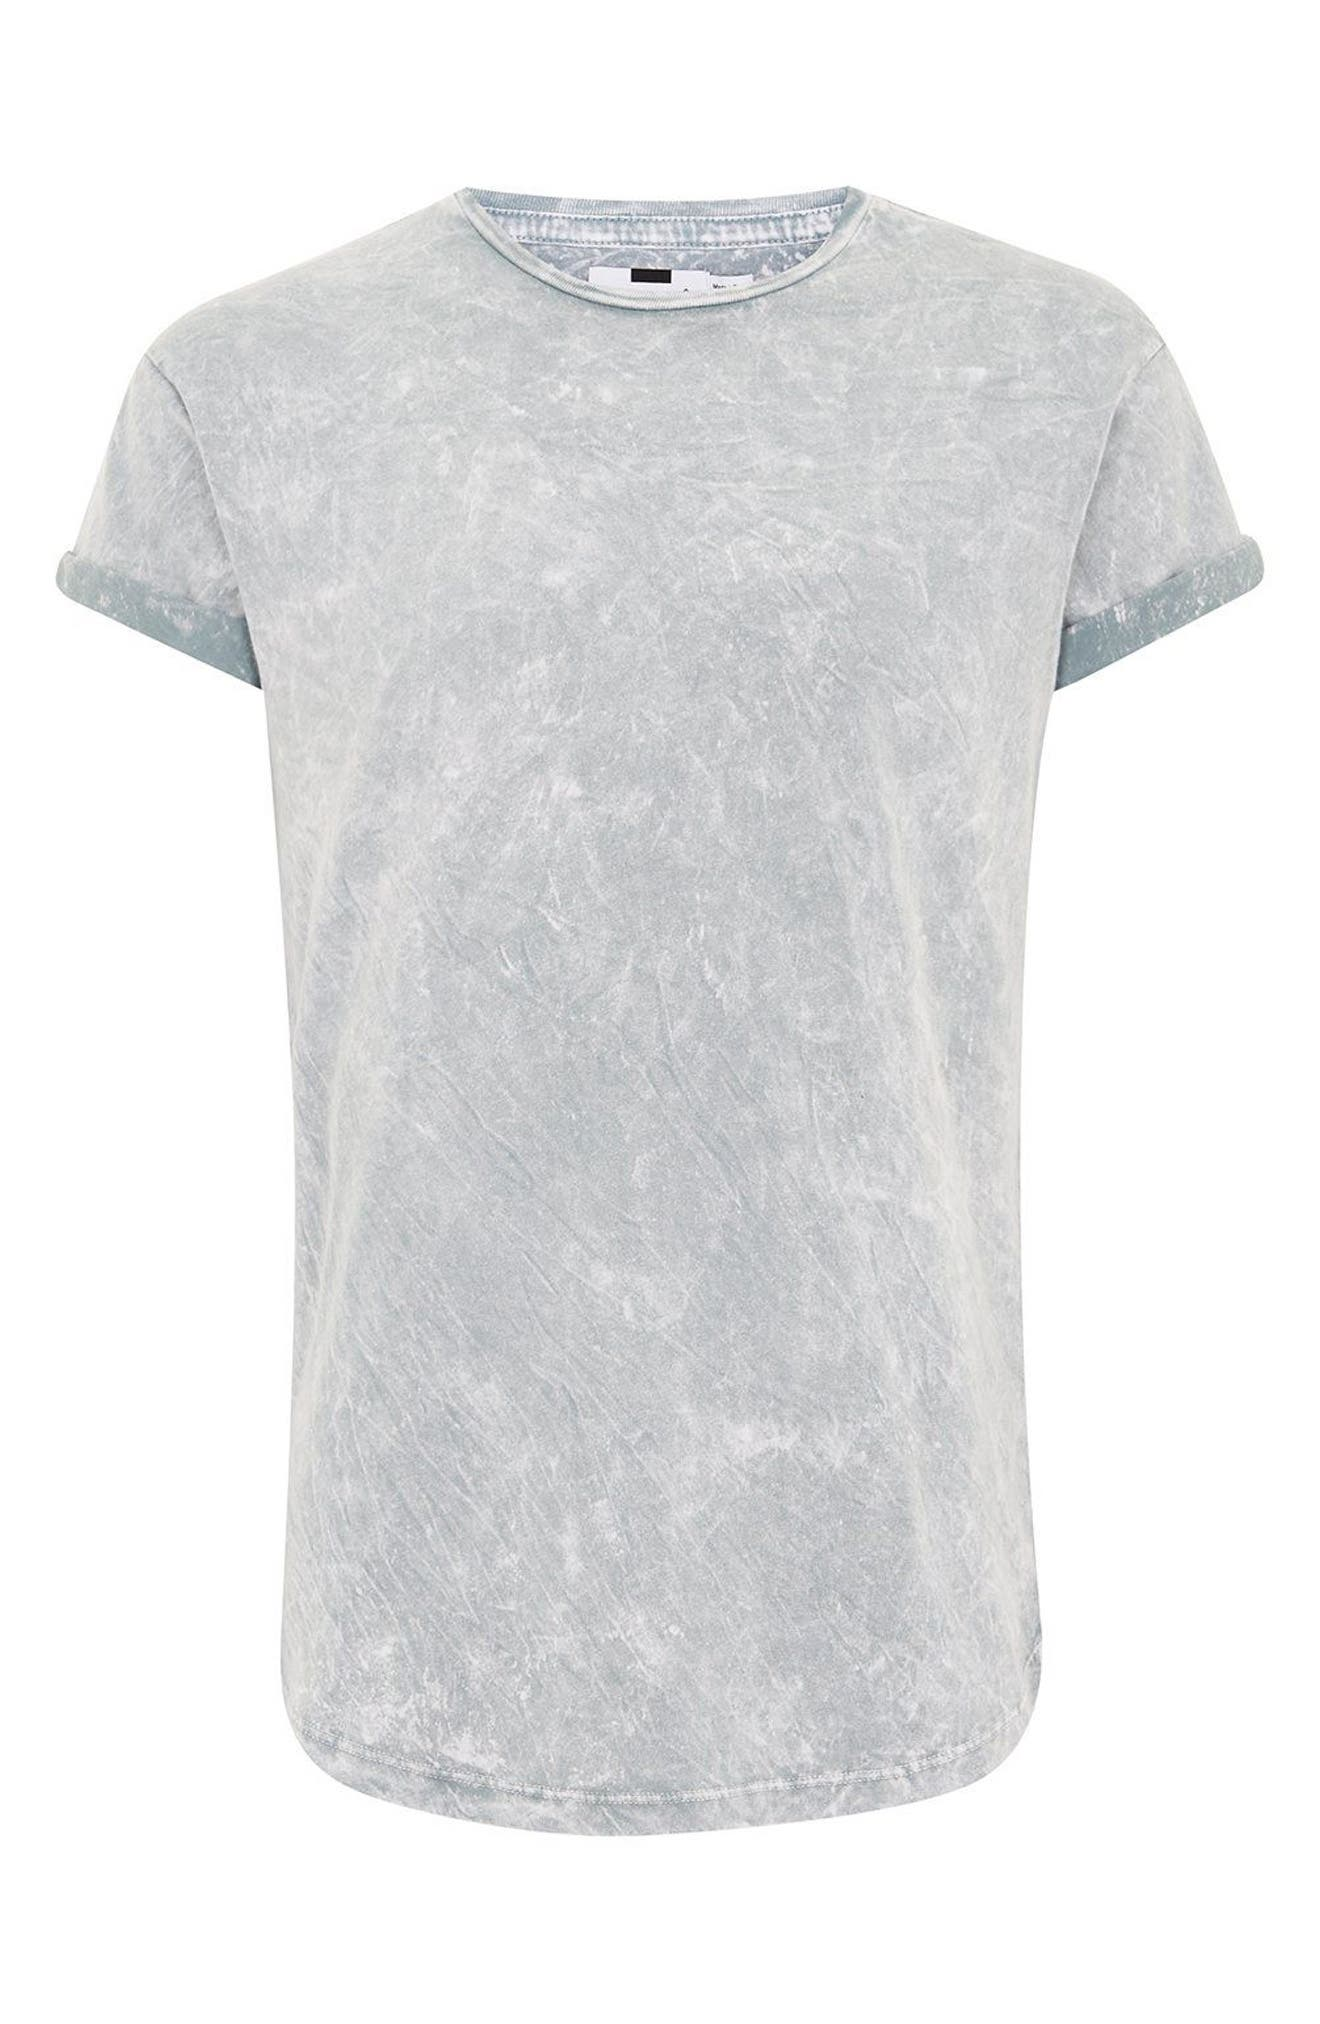 Crinkle Marble T-Shirt,                             Alternate thumbnail 4, color,                             Grey